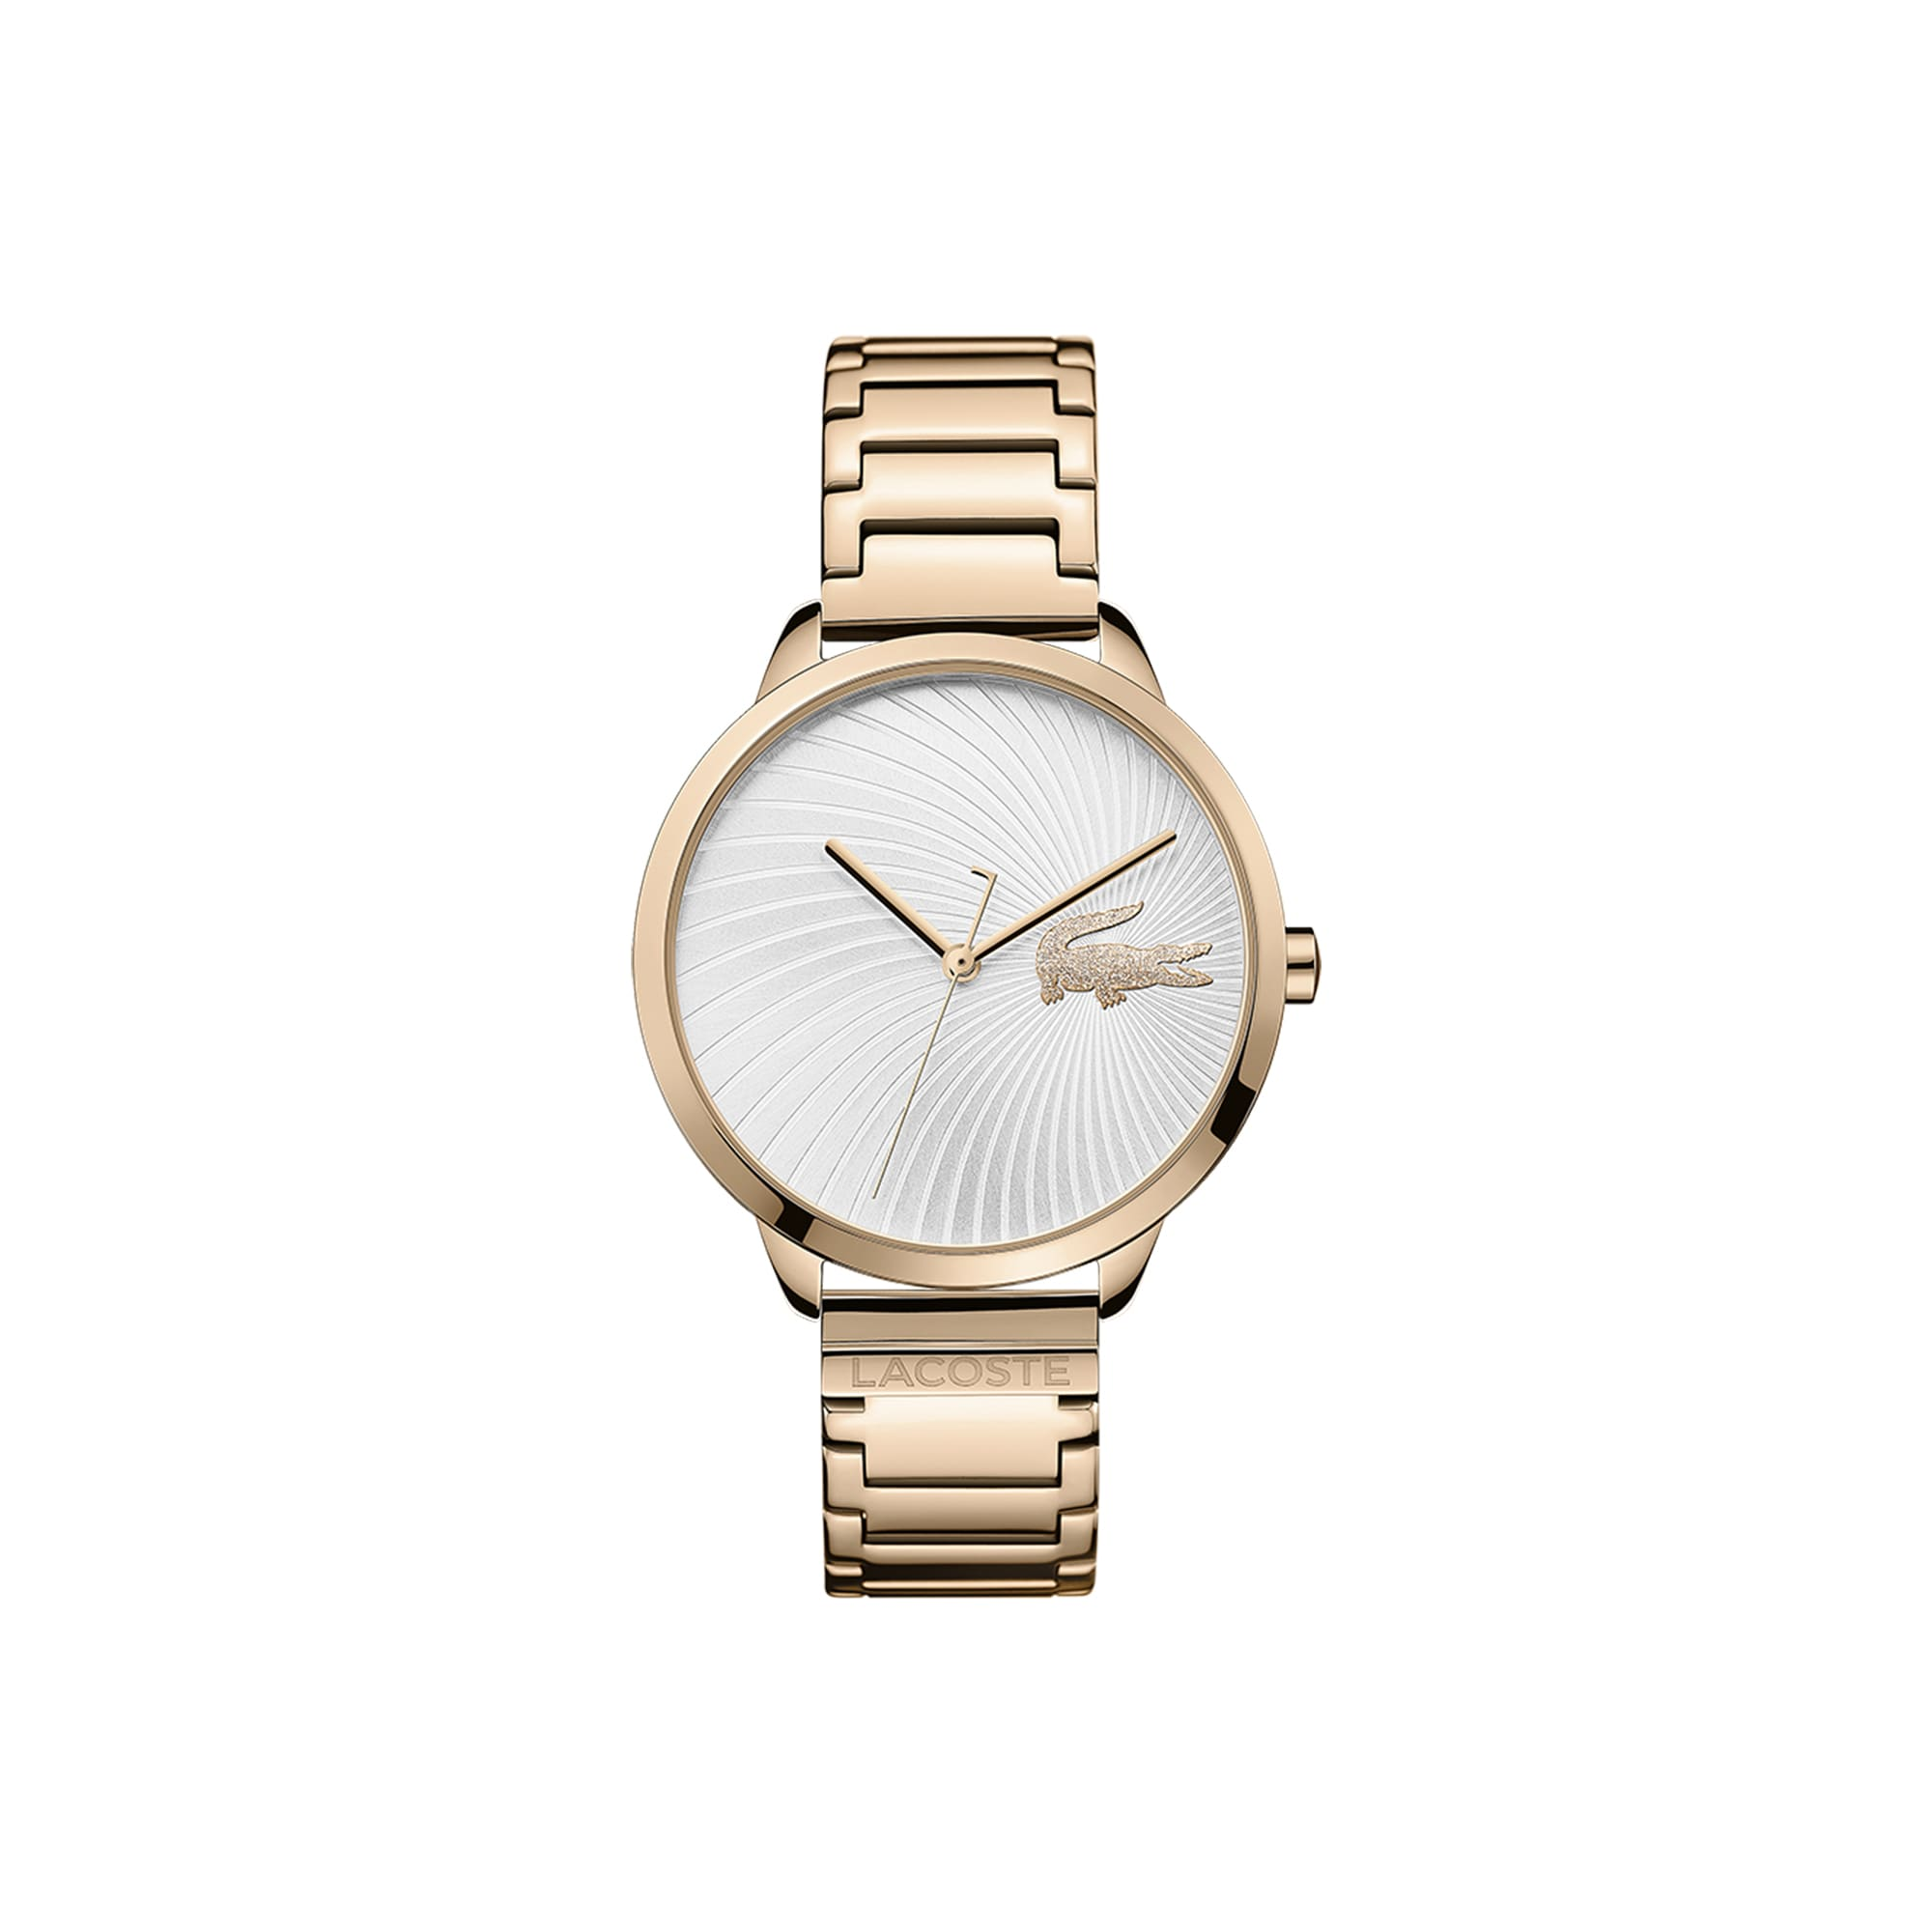 Women's Lexi Watch with Yellow Gold Bracelet